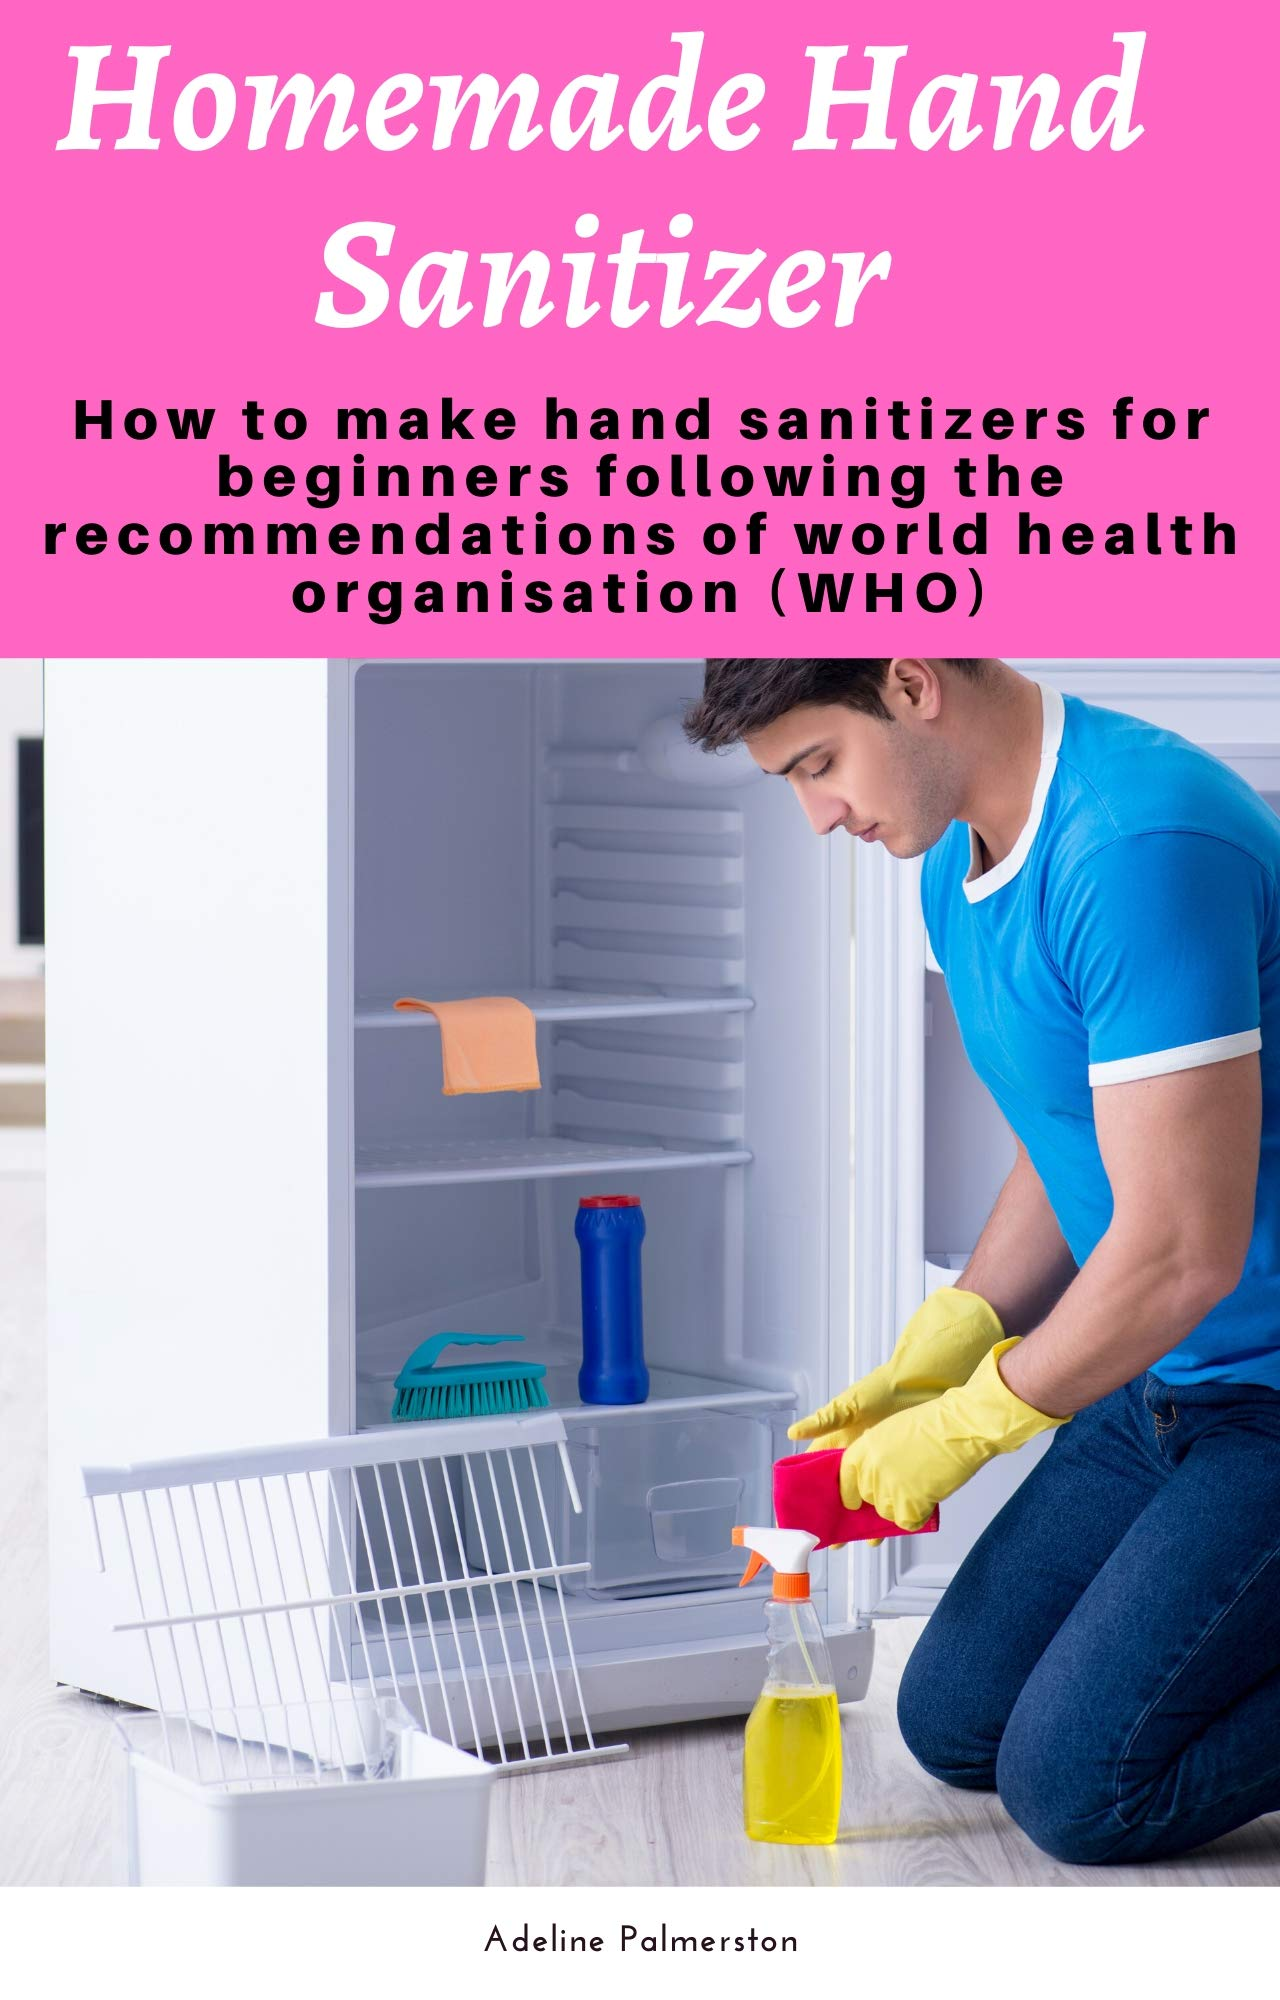 Homemade Hand Sanitizer: How to make hand sanitizers for beginners following the recommendations of world health organisation